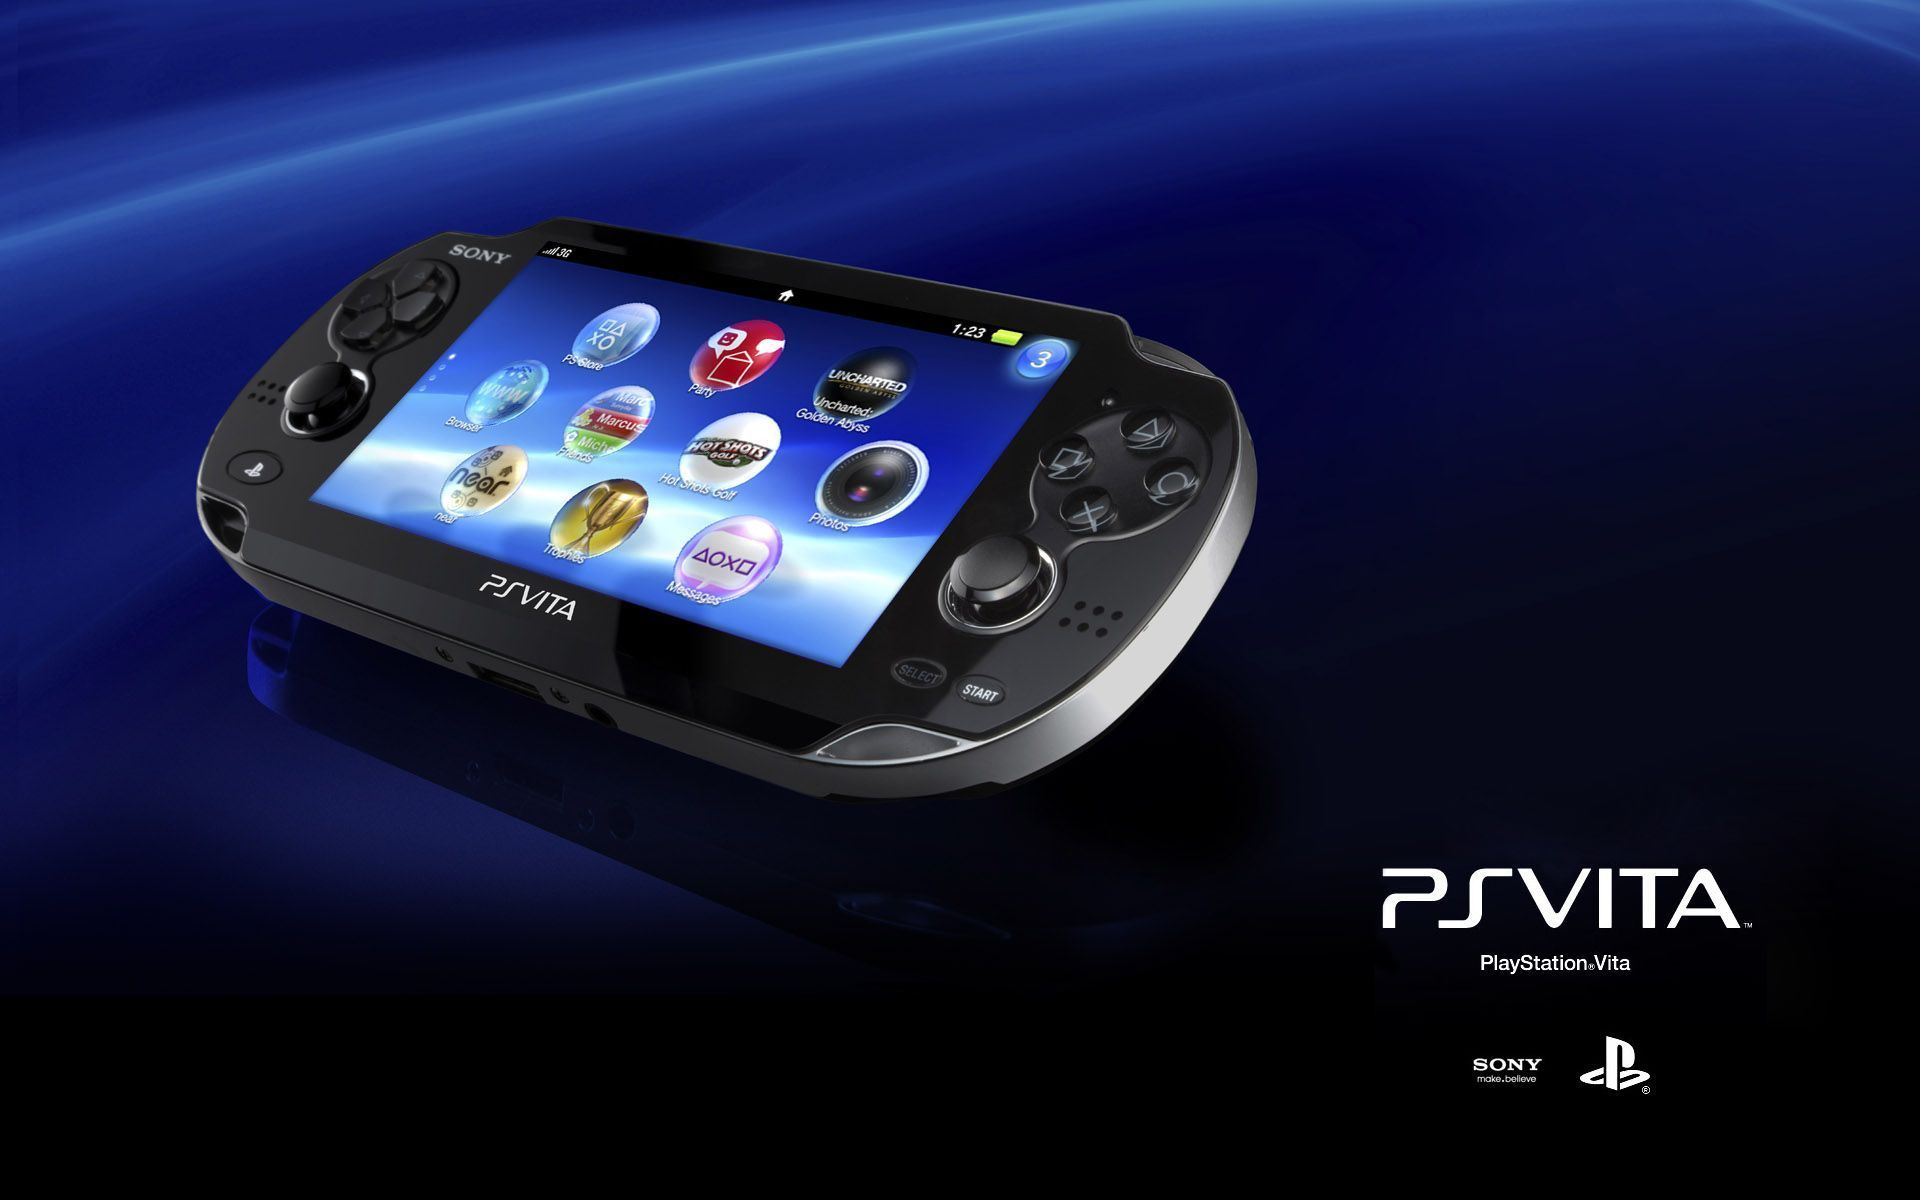 Playstation Vita Images 850793d5bc3c71fdd9a31694798006af HD Wallpaper And Background Photos